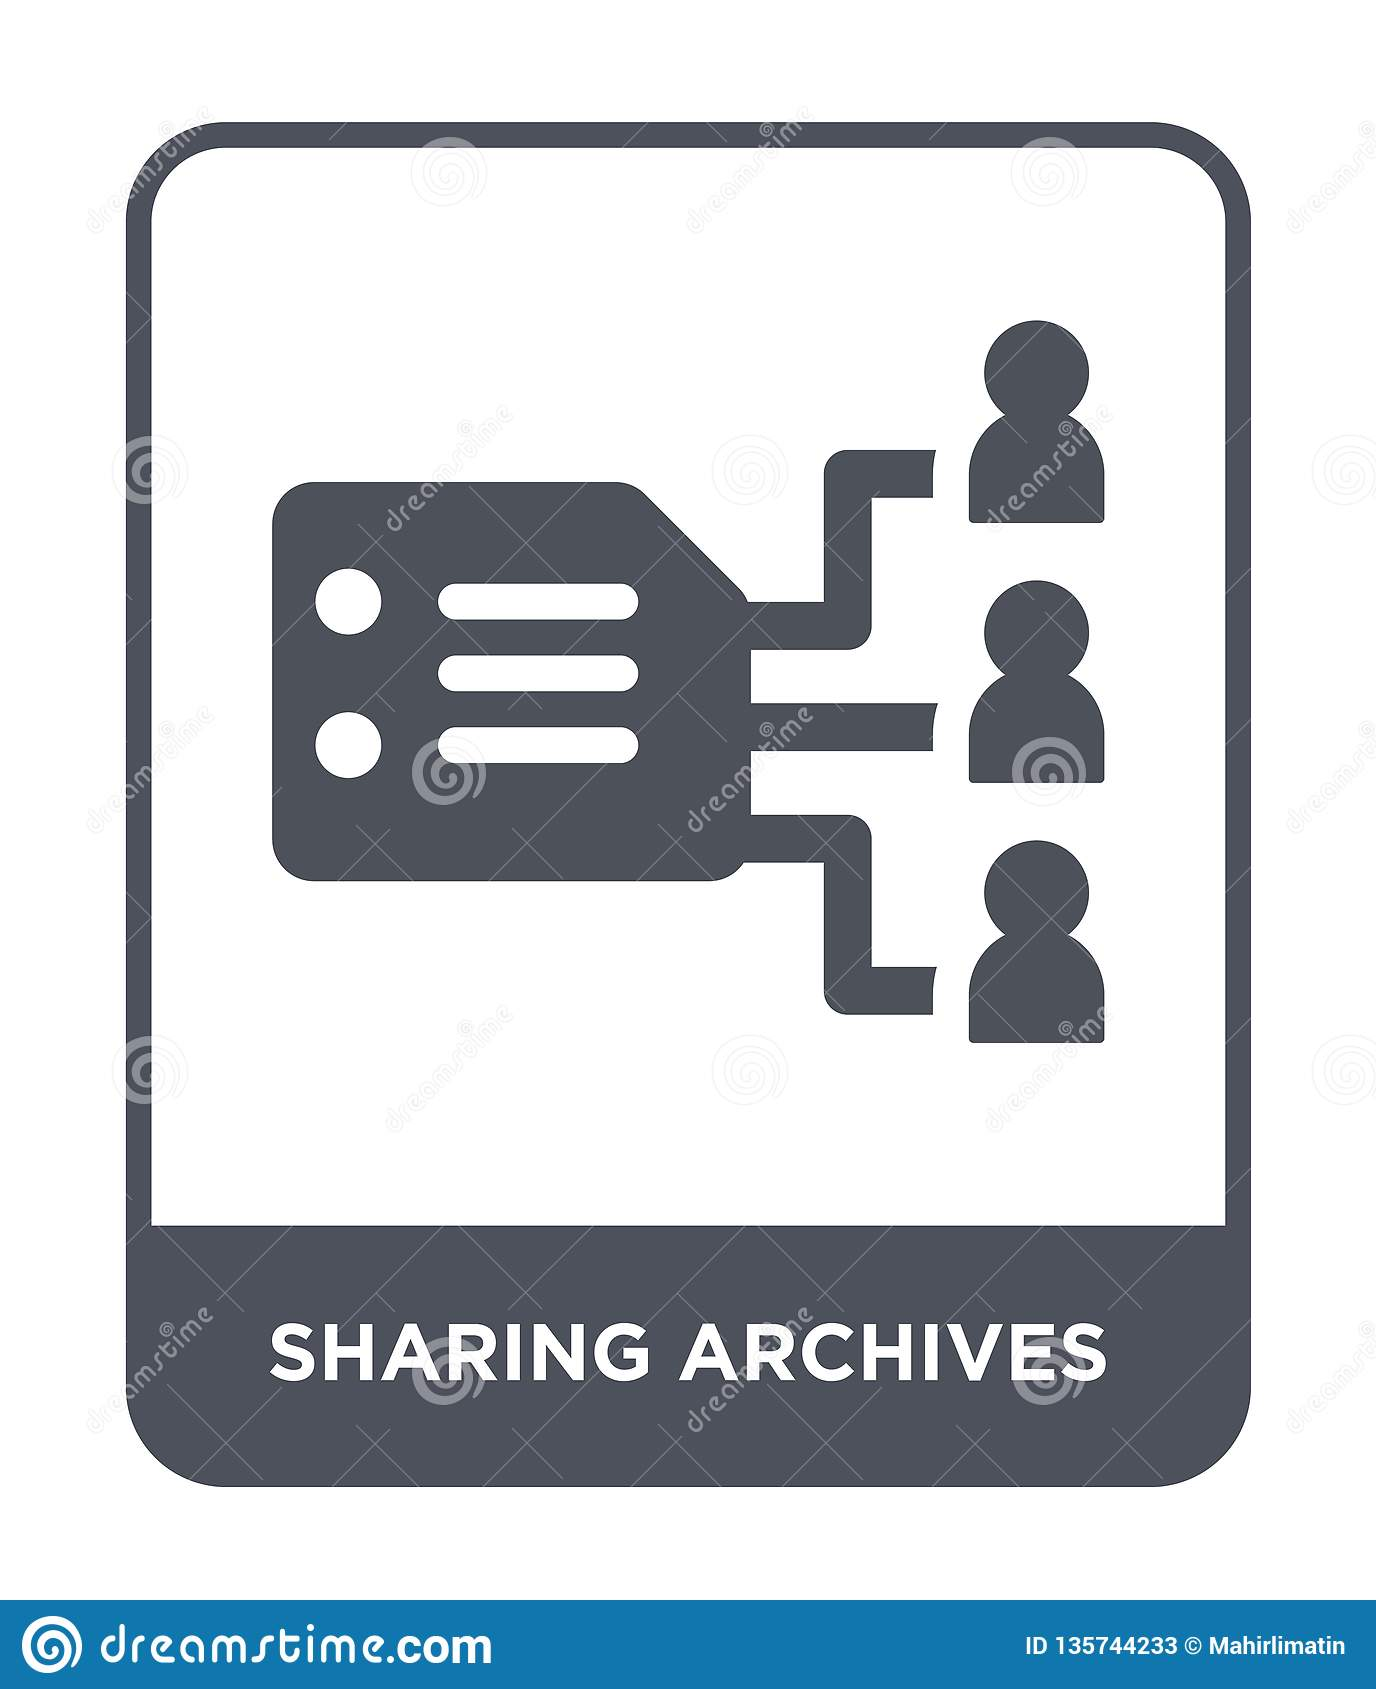 sharing archives icon in trendy design style. sharing archives icon isolated on white background. sharing archives vector icon